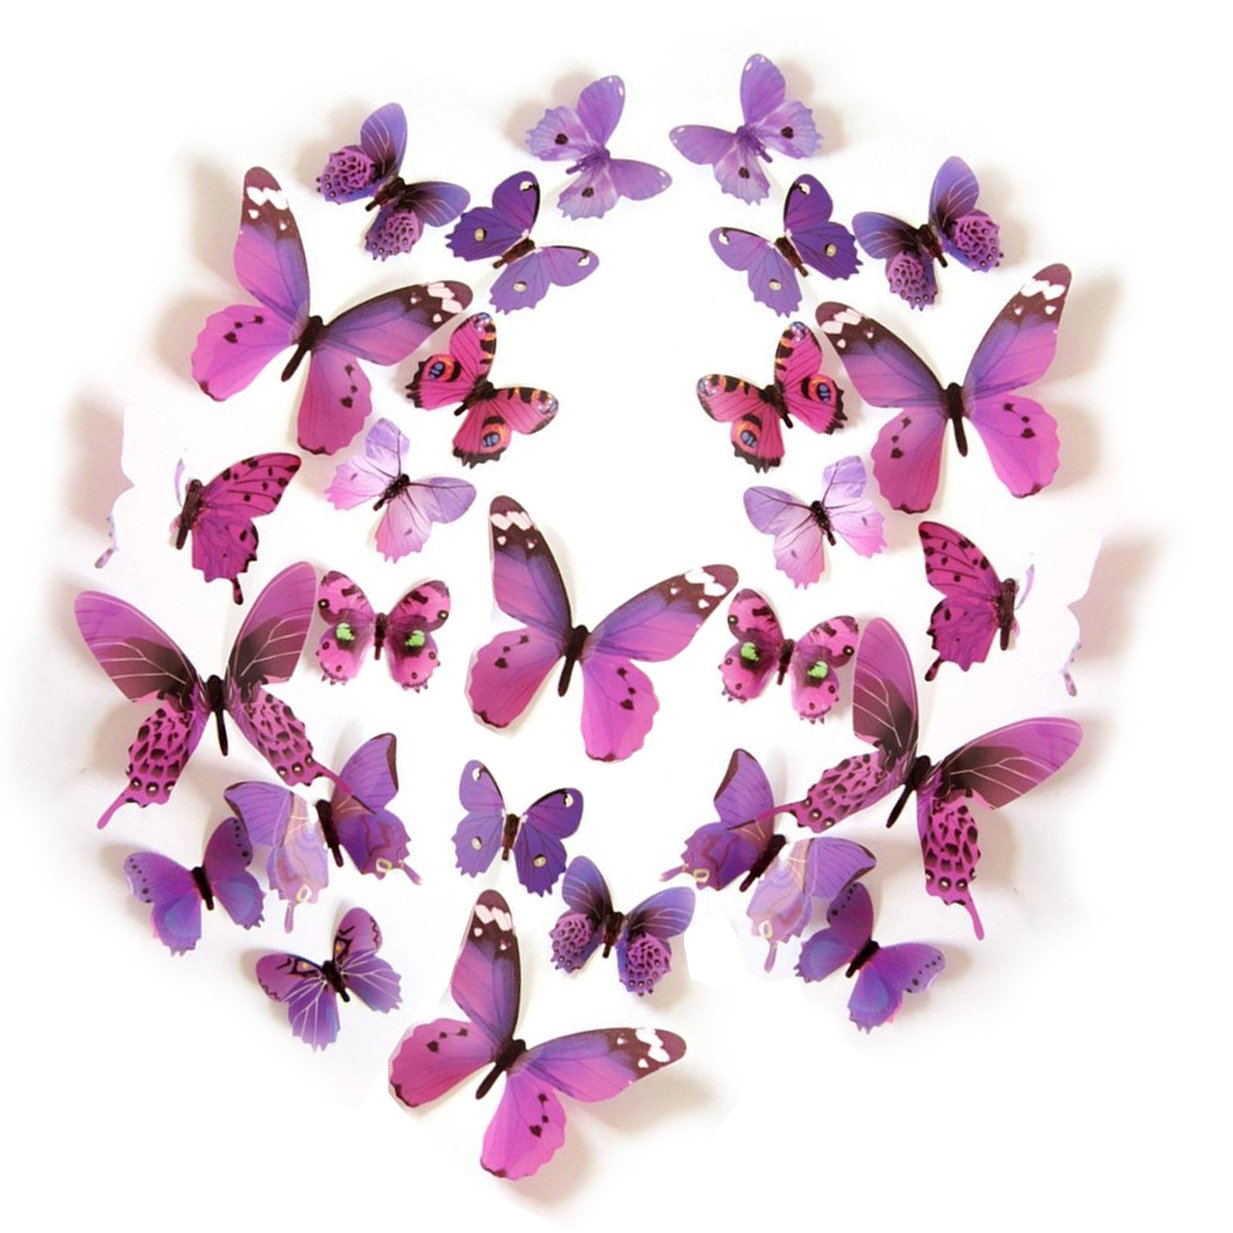 Butterflies Kids' Baby Wall Decals Room Decorations, Hang Indoors 3D Colorful Butterfly Wall Stickers DIY Art Decor Crafts - Set of 2,Pueple,and Pink Euter